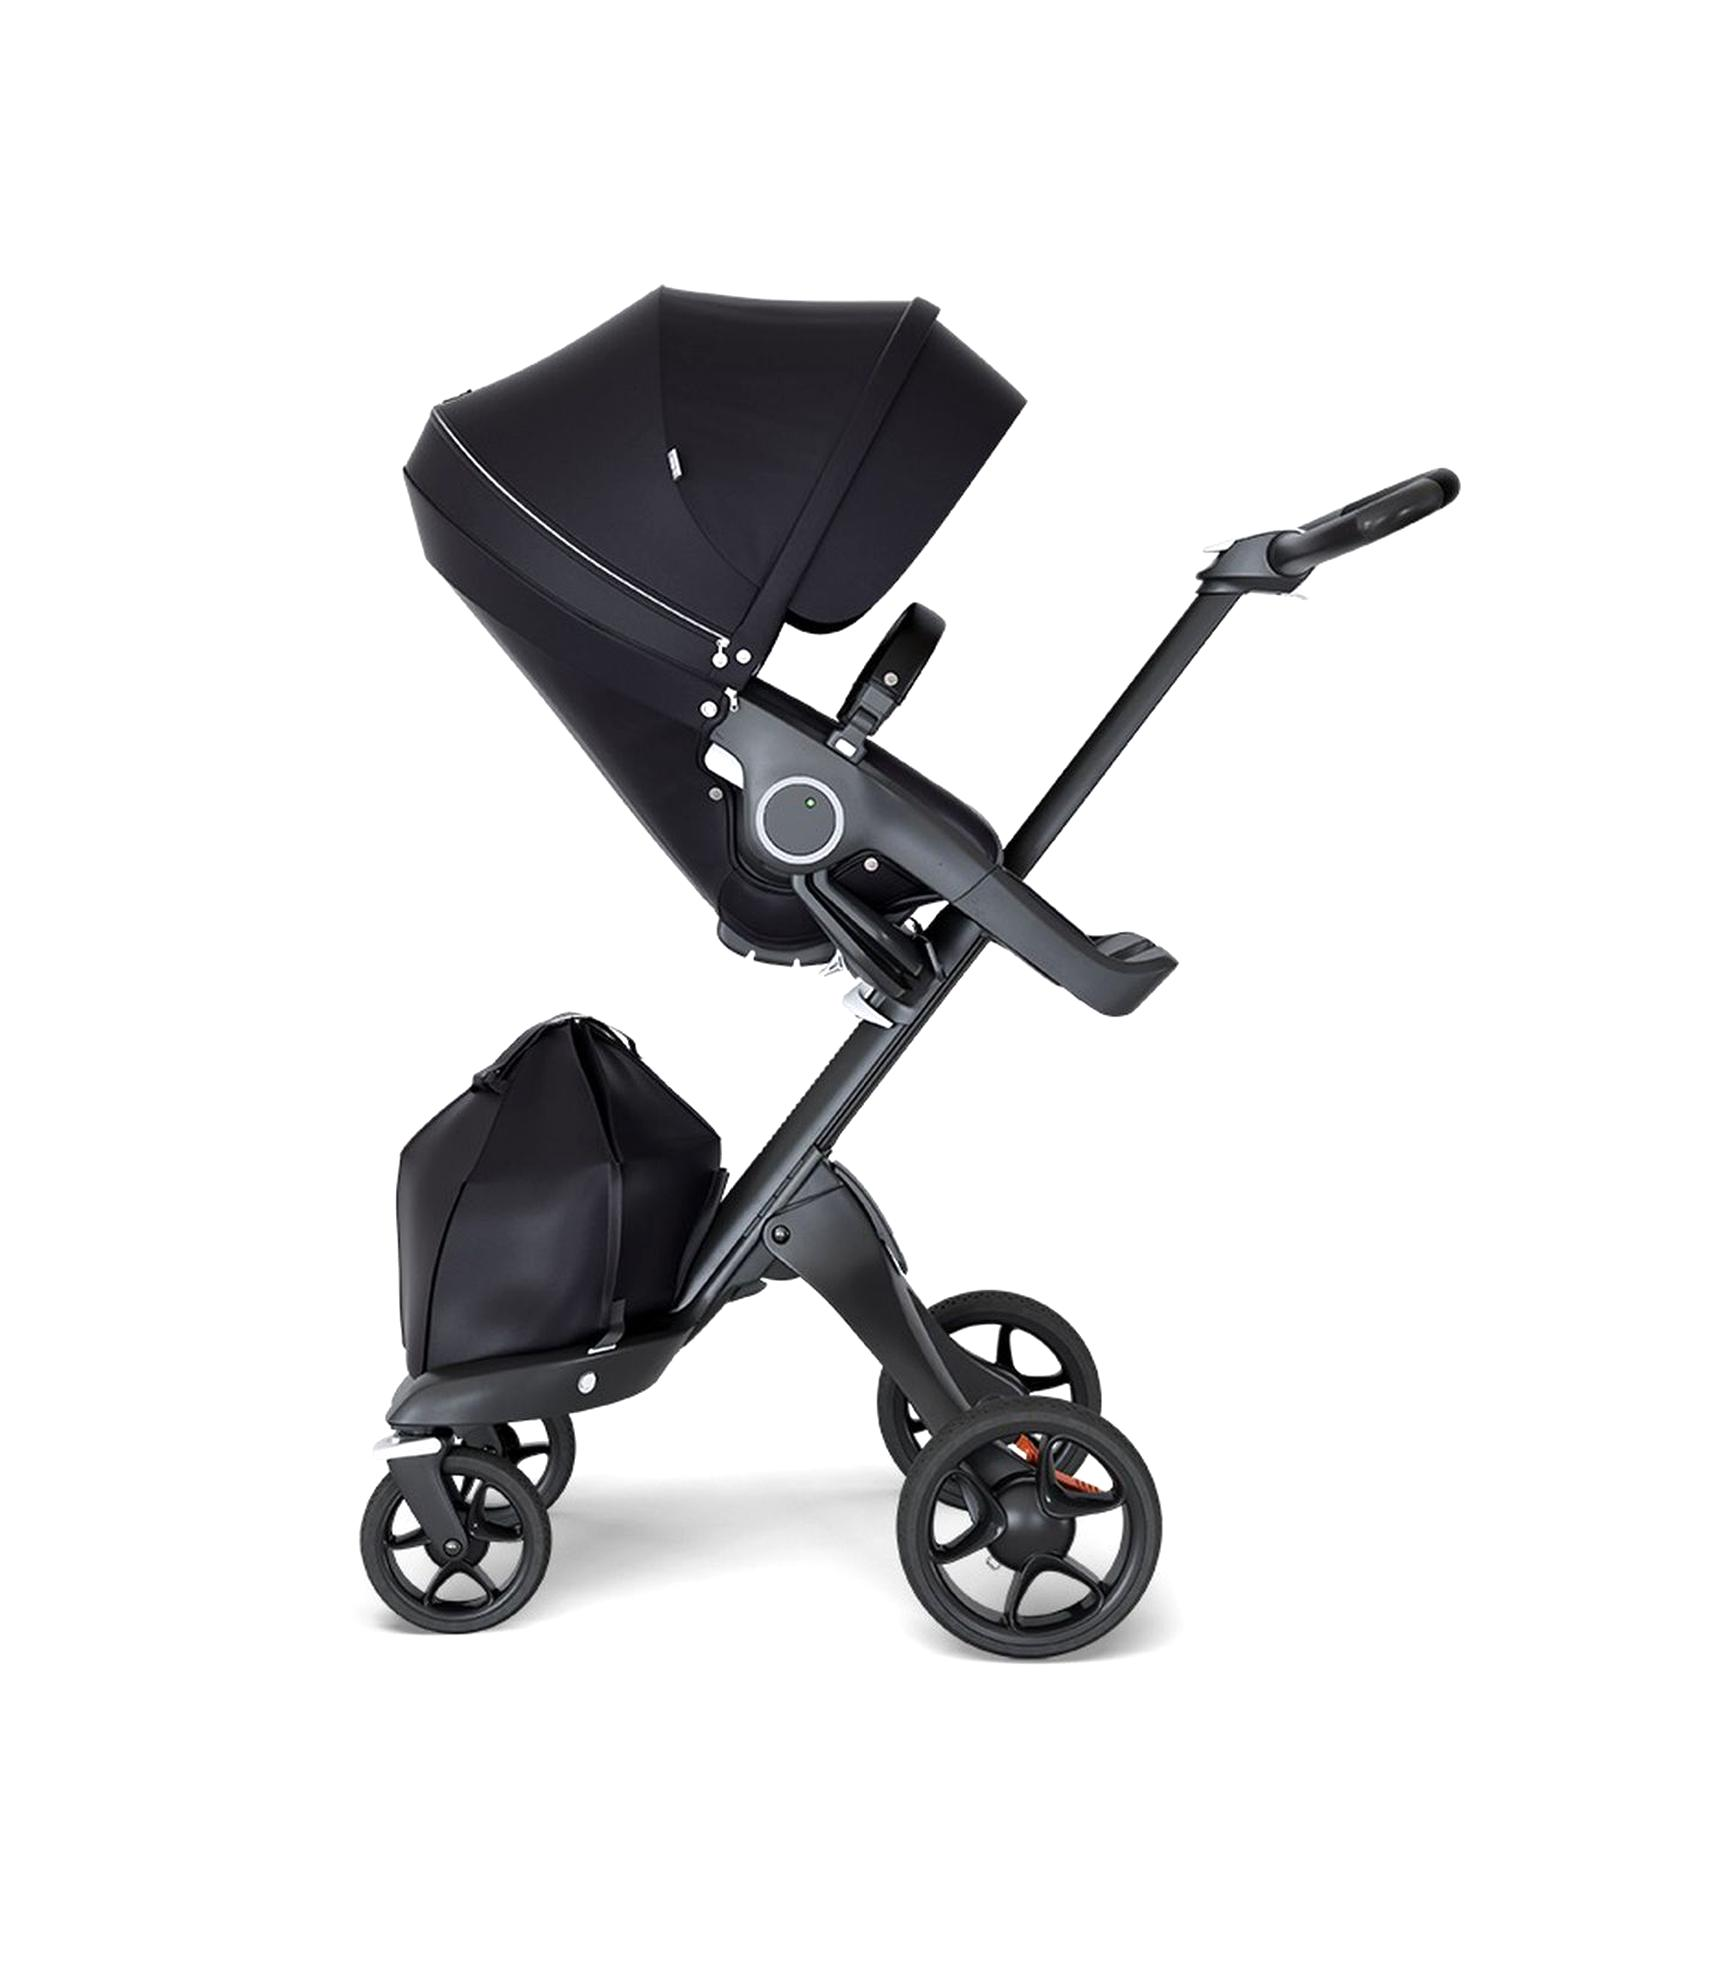 Joolz Stroller Amazon Stokke Stroller For Sale Only 2 Left At 75